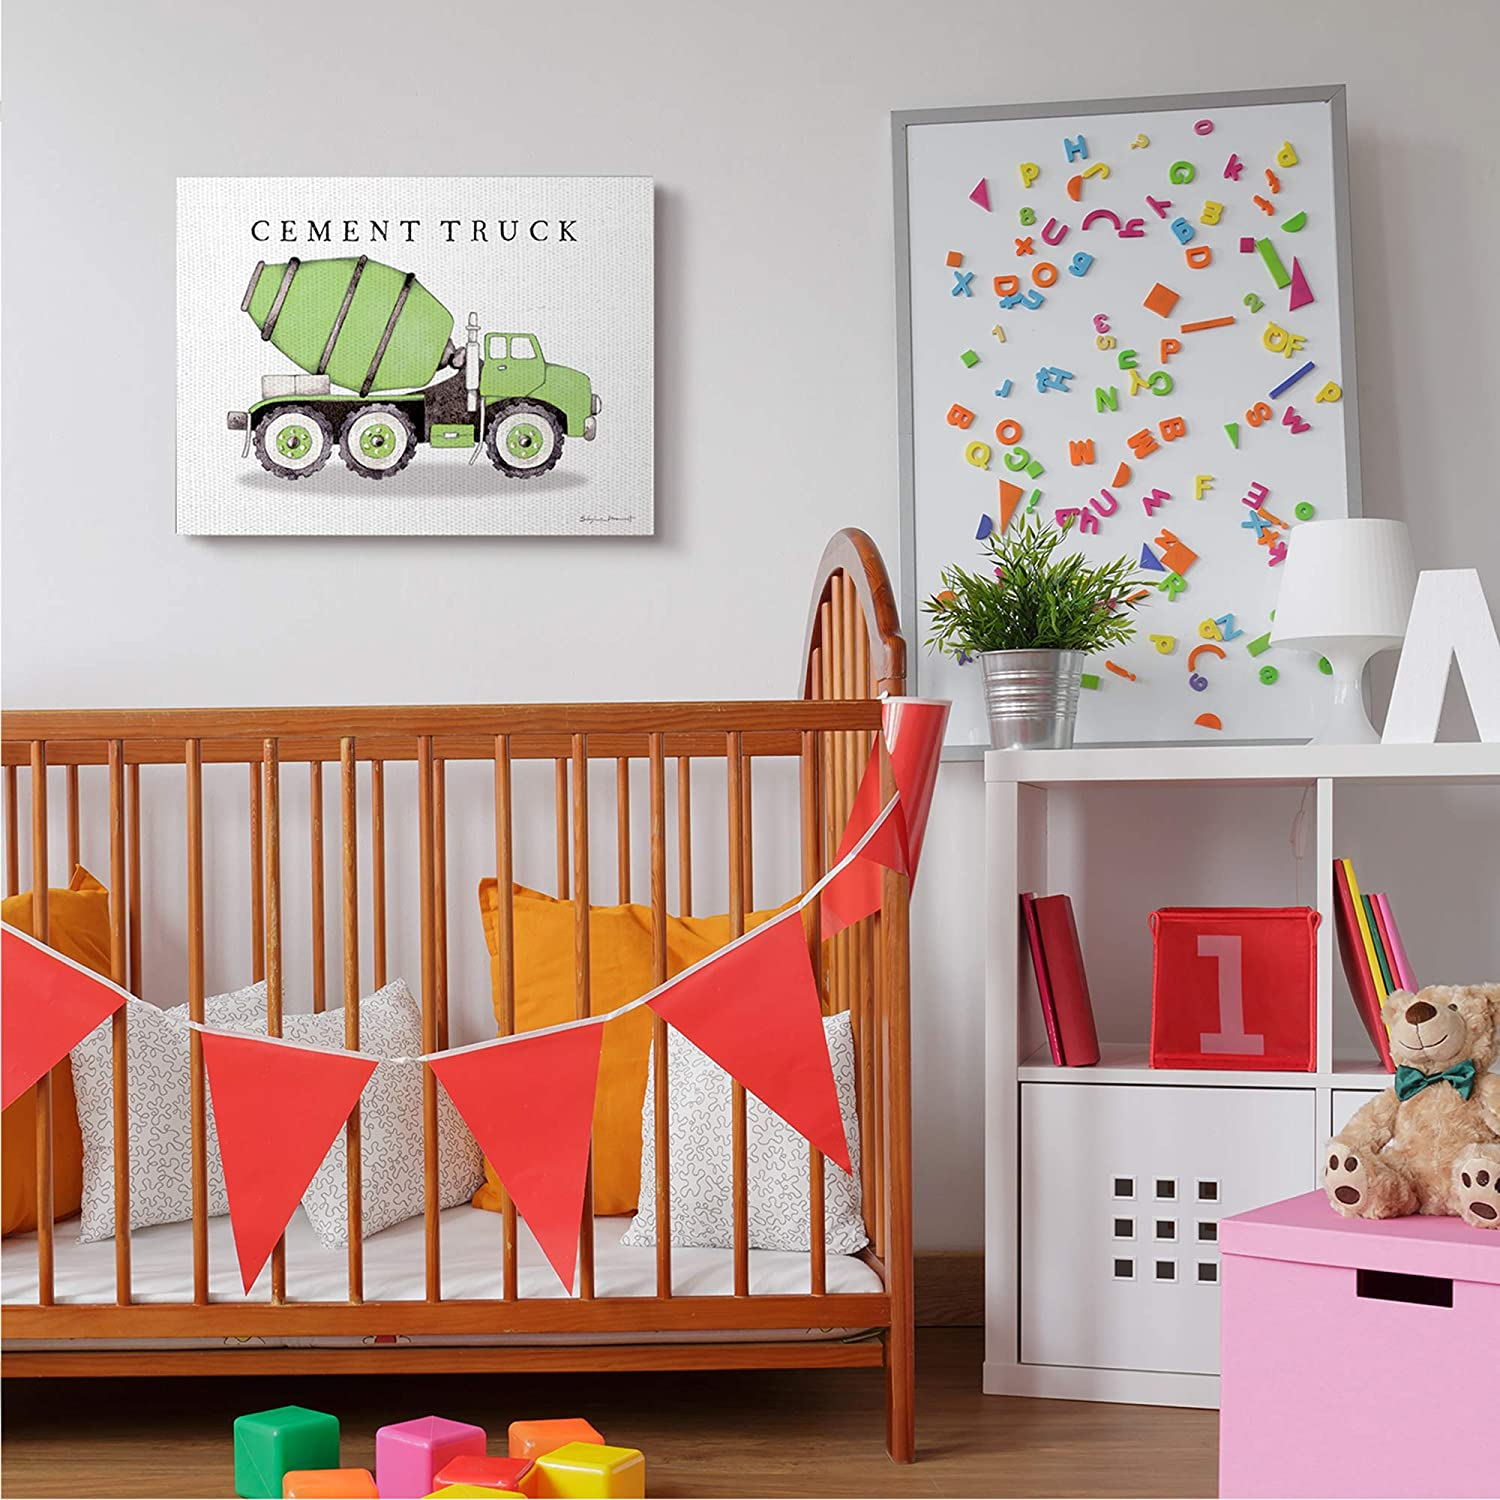 Off-White Designed by Stephanie Workman Marrott Canvas Wall Art Stupell Industries Green Cement Truck Mixer Classic Construction Vehicle 24 x 30